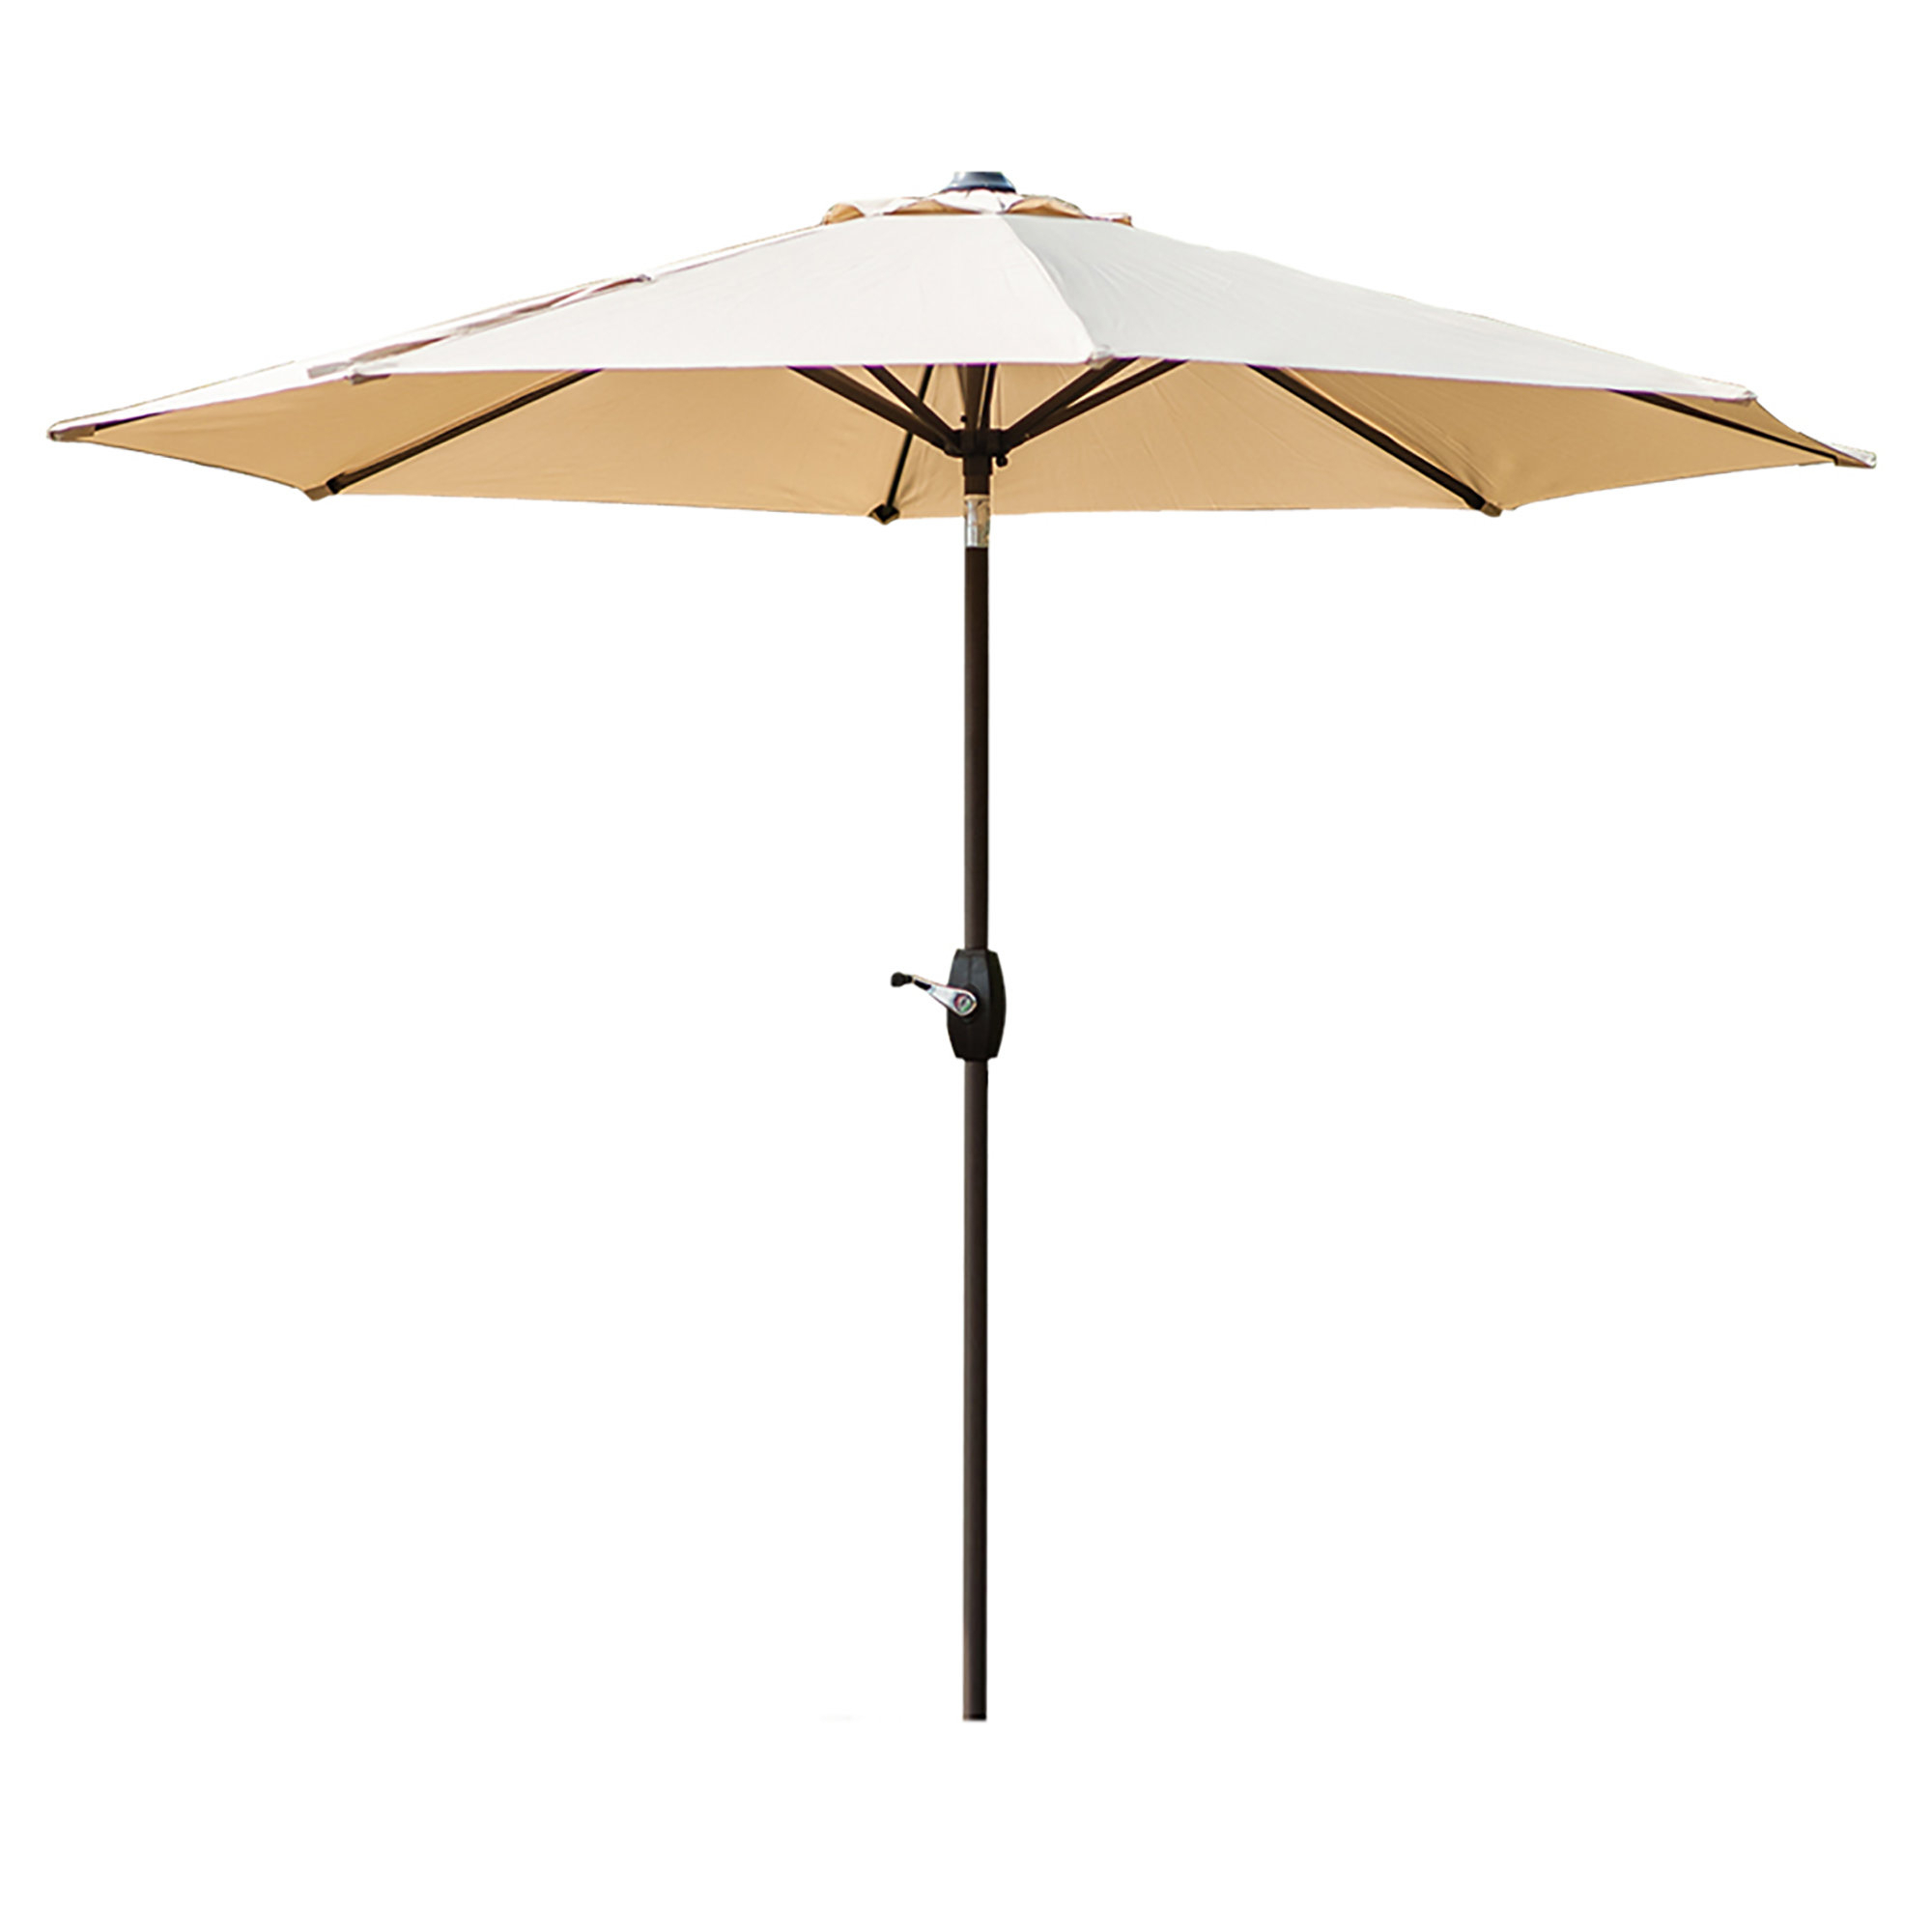 Dade City North Half Market Umbrellas Throughout Current Charlton Home Kenn 9' Market Umbrella (View 20 of 20)